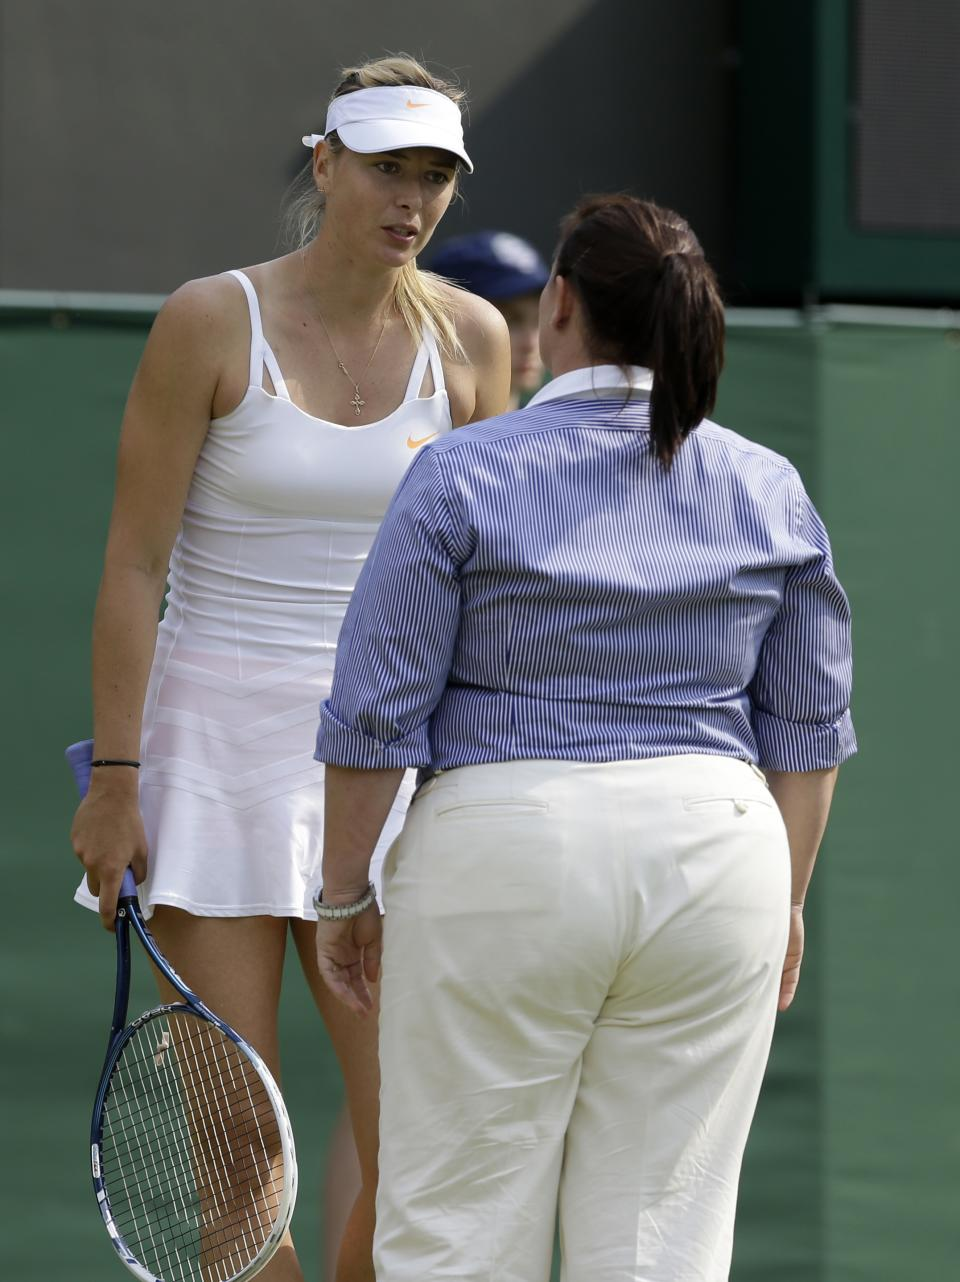 Maria Sharapova of Russia, left, speaks with the umpire during her Women's second round singles match against Michelle Larcher De Brito of Portugal at the All England Lawn Tennis Championships in Wimbledon, London, Wednesday, June 26, 2013. (AP Photo/Anja Niedringhaus)